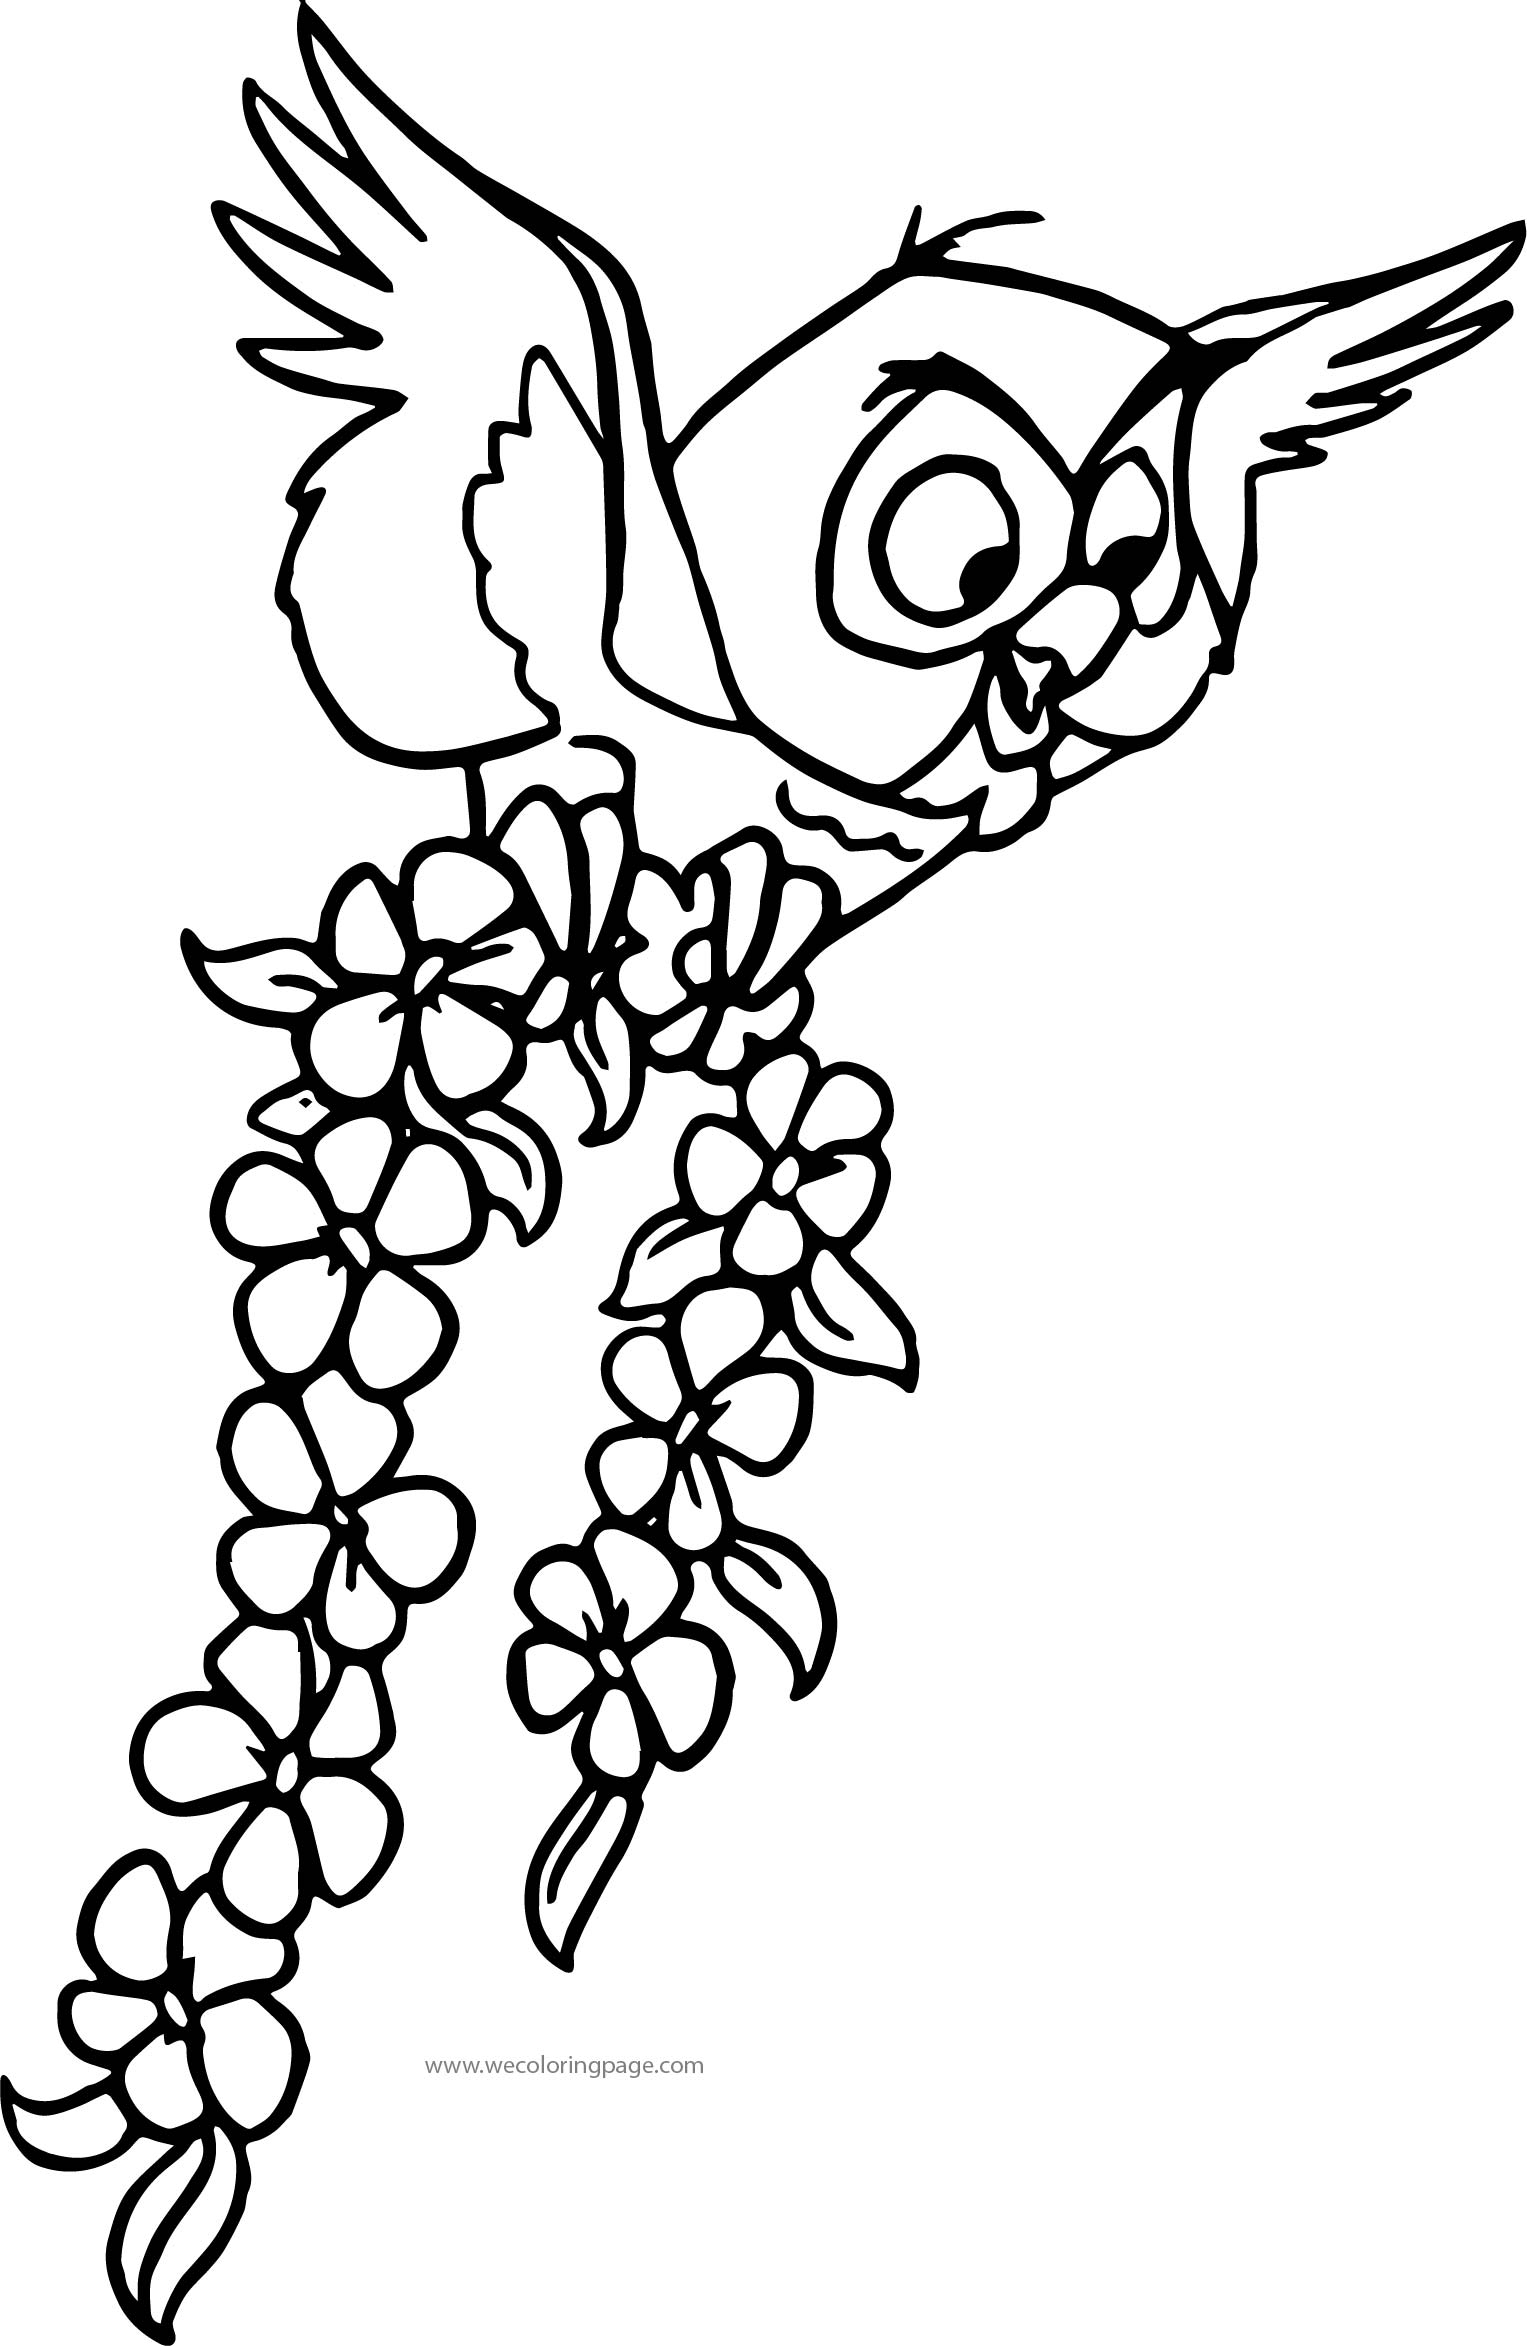 Aurora Misc Sleeping Beauty Owl Coloring Page